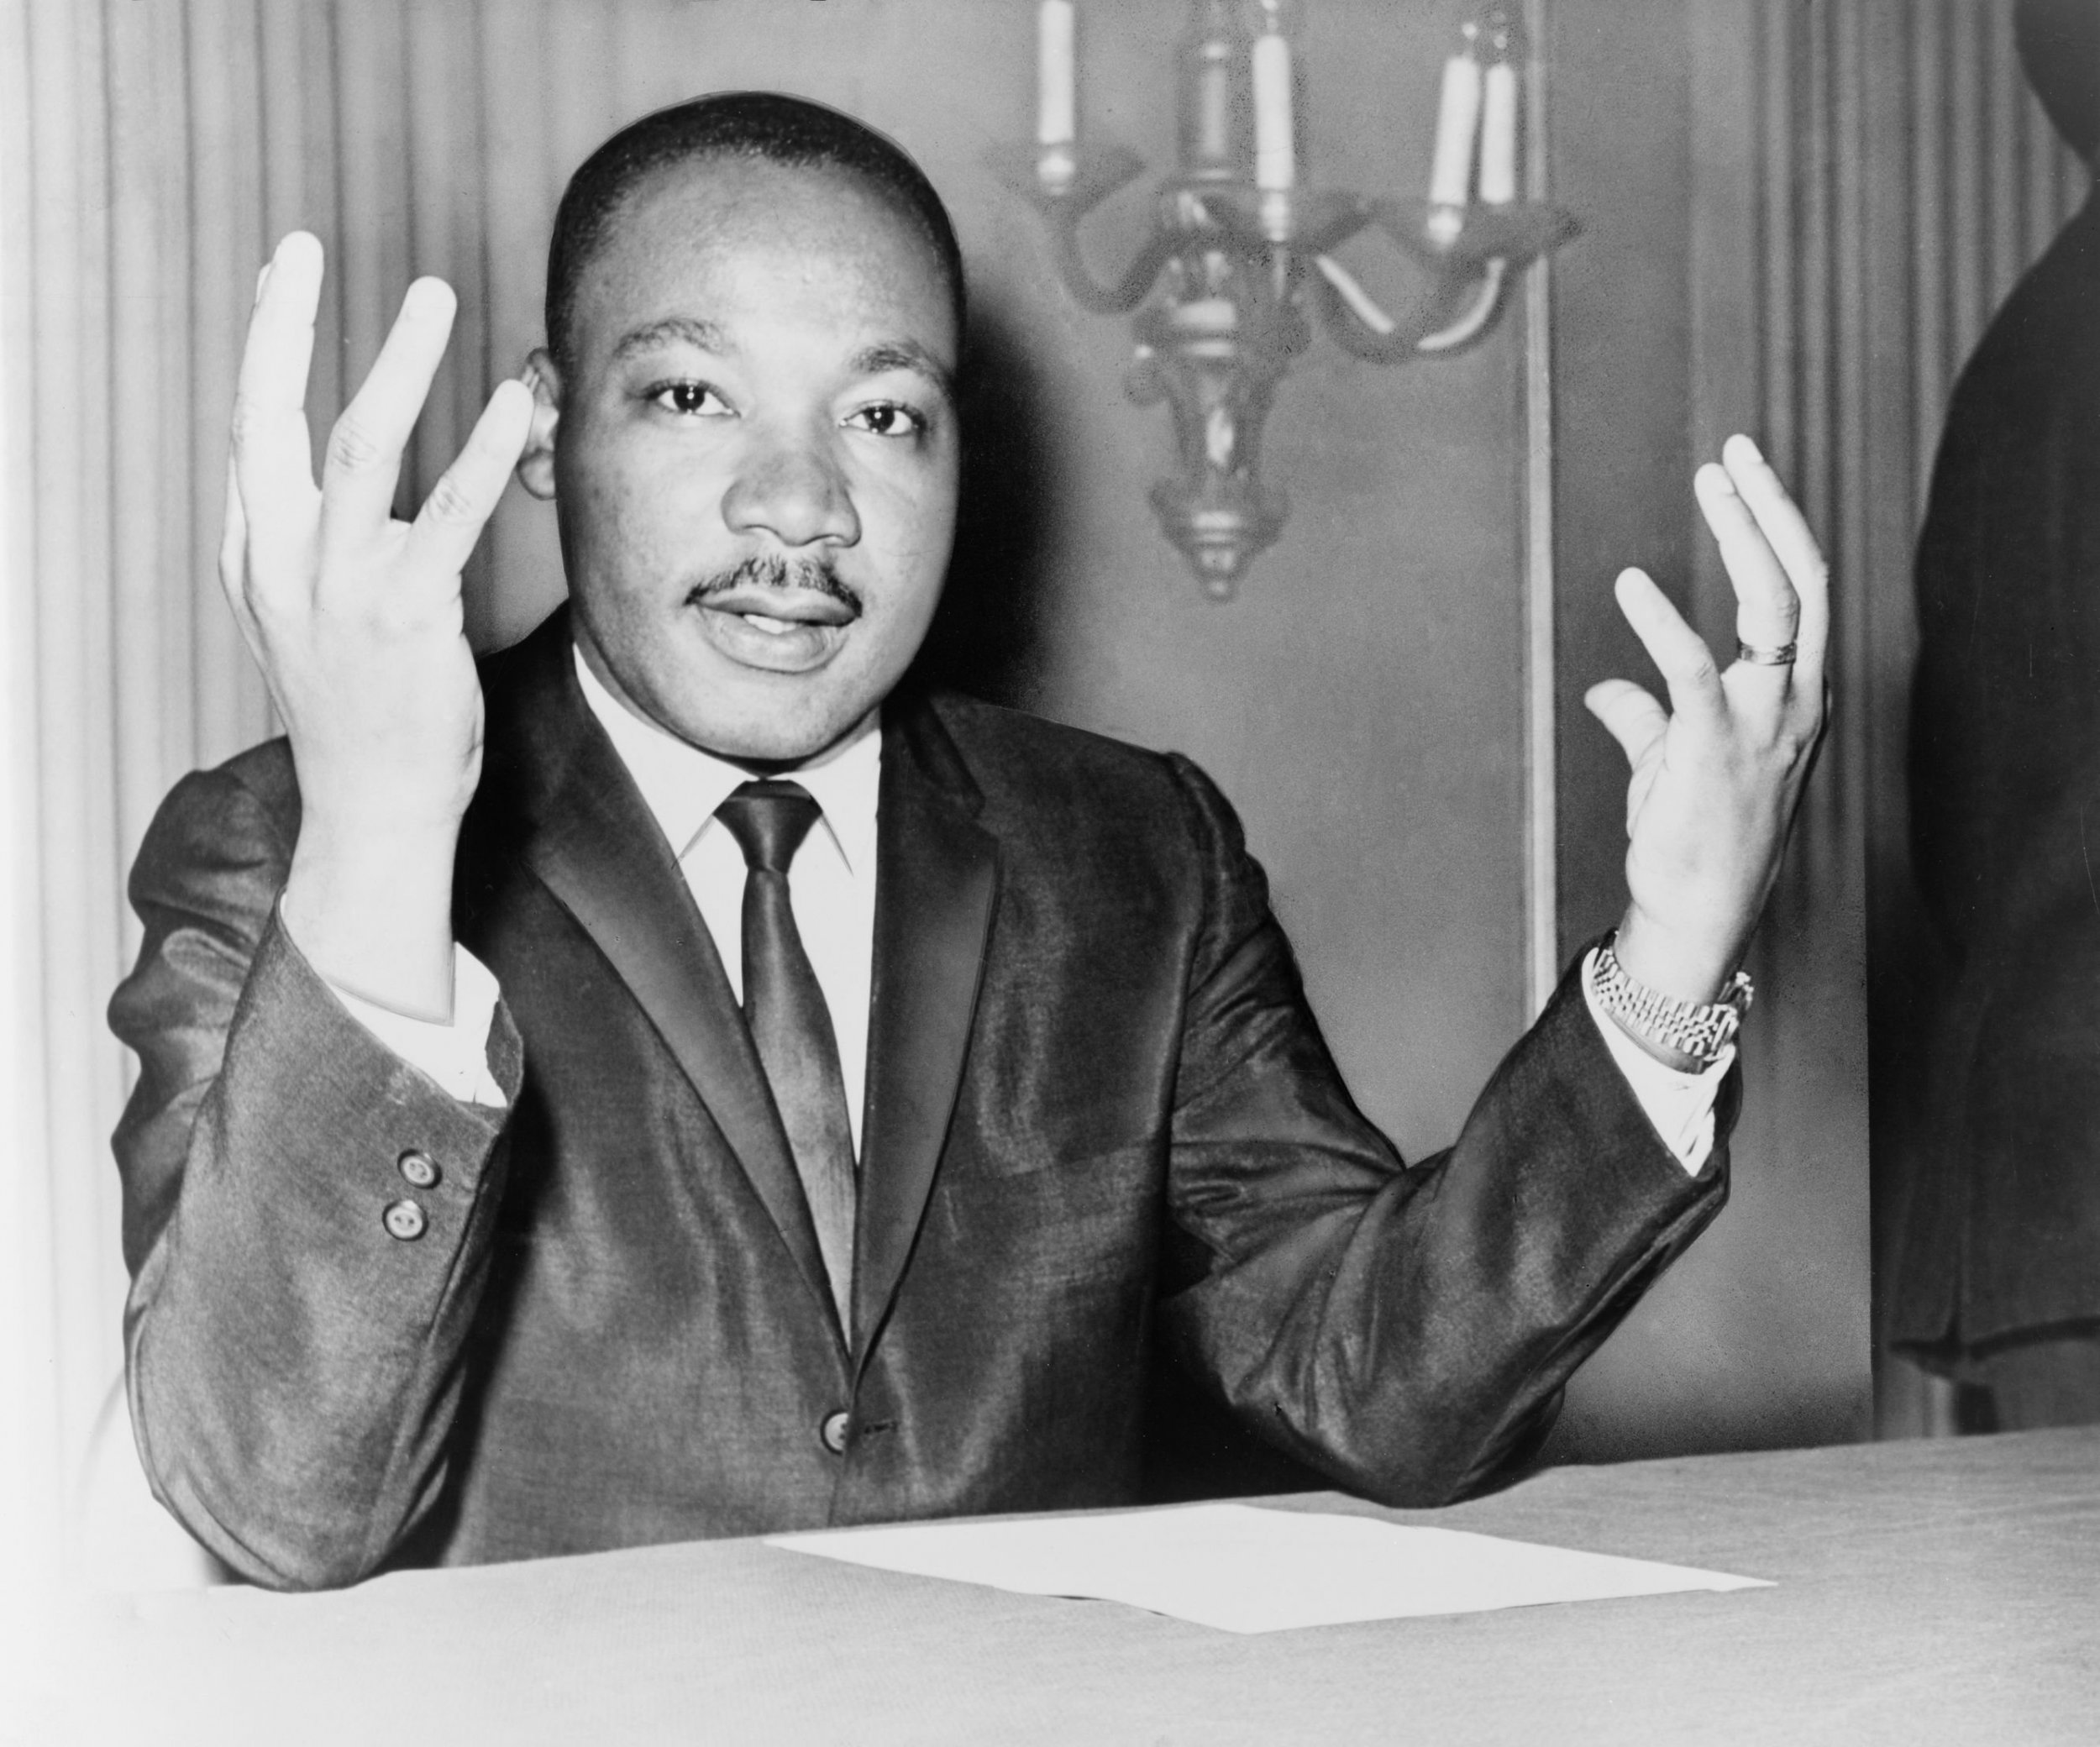 martin luther king jr leadership style Martin luther king leadership 1 martin luther king jr the man and the dream 1 2 content • childhood and education • strengths • segregation between blacks and whites • martin luther king jr vision • king and 5 practices of exemplary leaders • martin luther king jr leadership style • the dream.